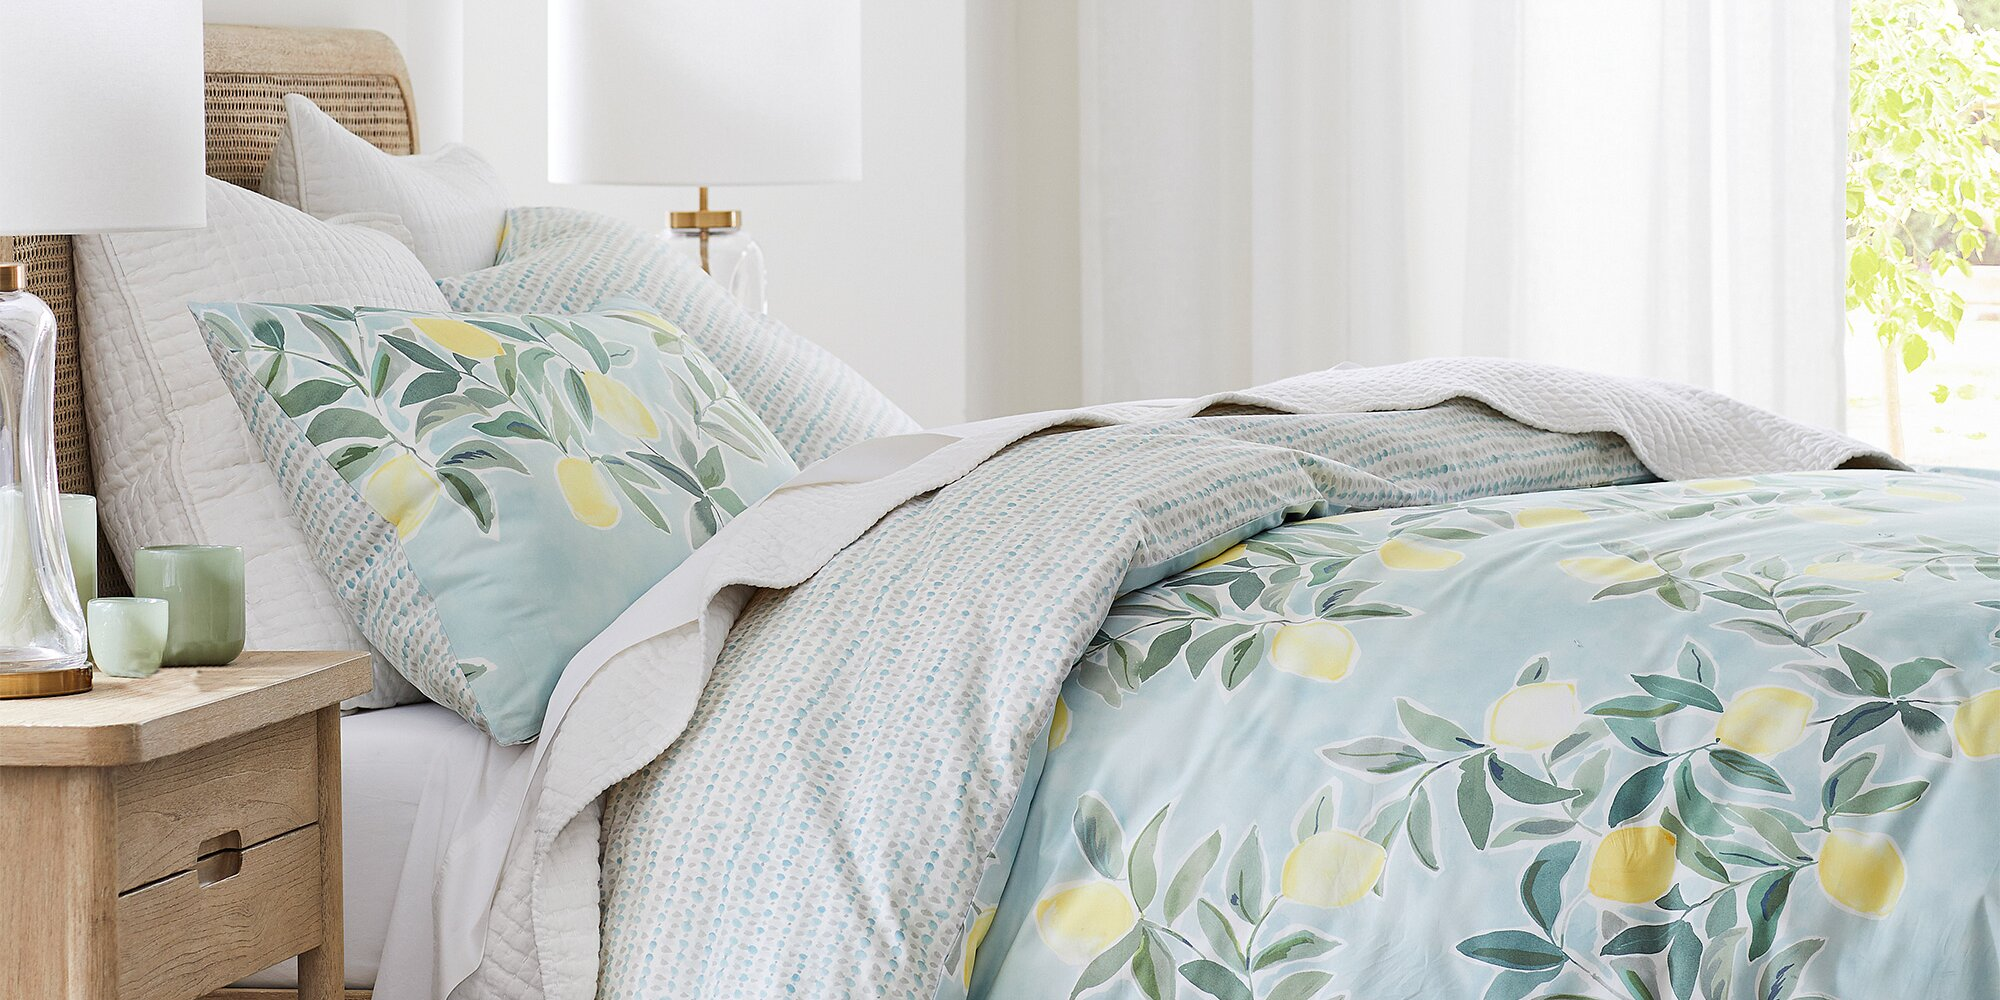 Cheer Up Your Home For Spring With Rebecca Atwood S New Collection At Pottery Barn Real Simple